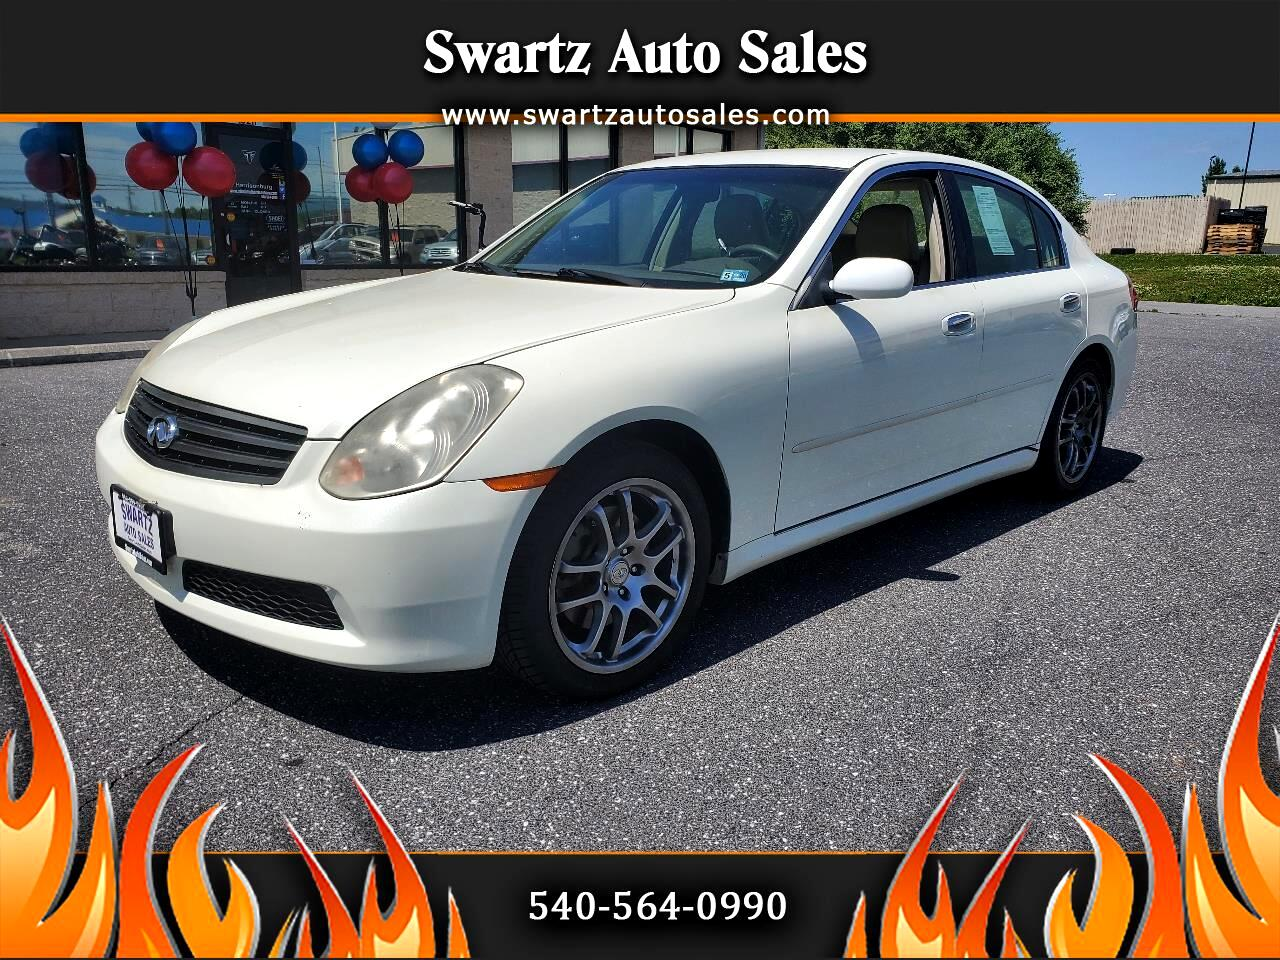 2006 Infiniti G35 Sedan G35 4dr Sdn Manual